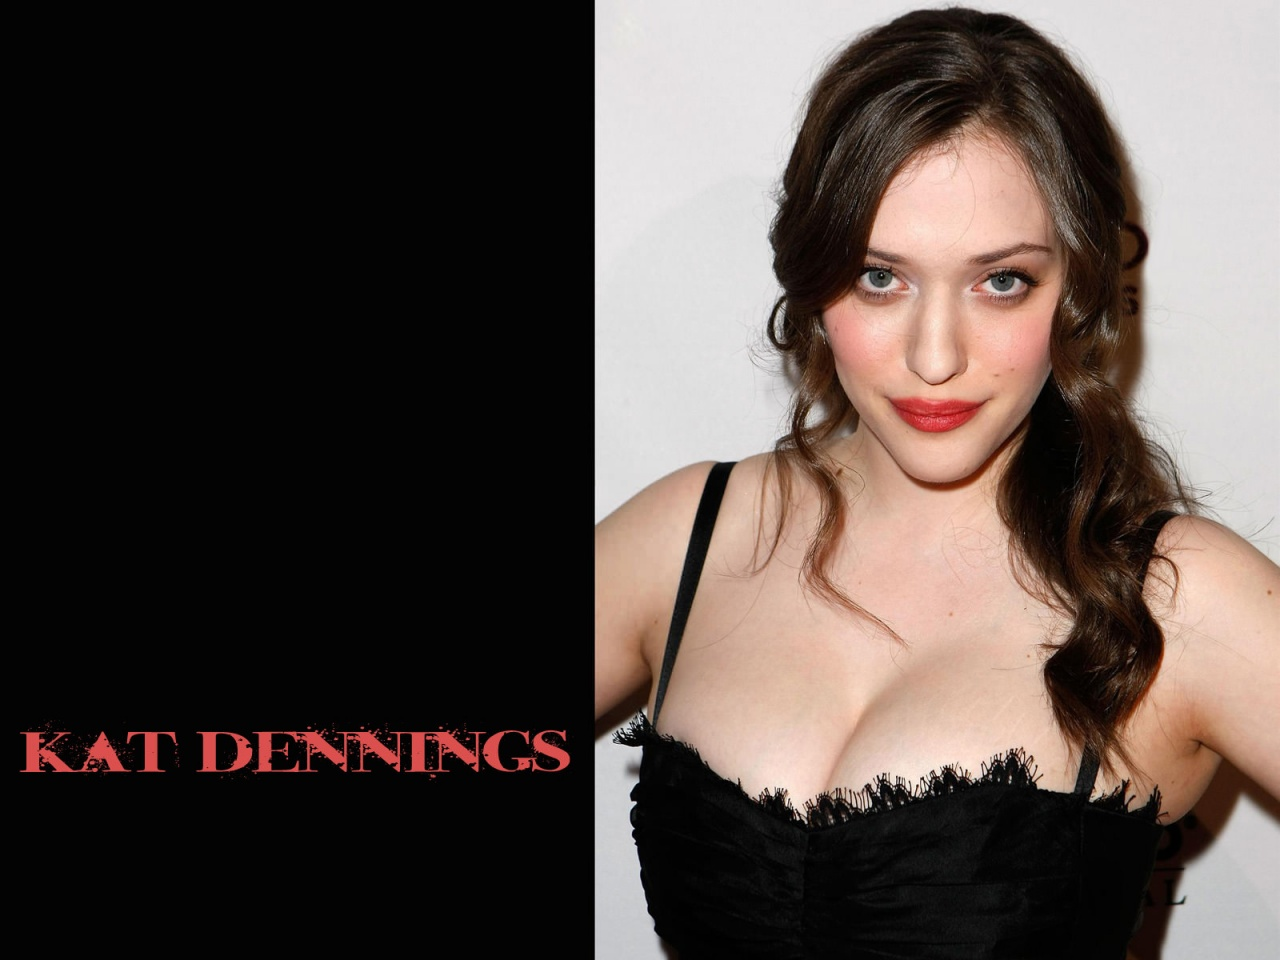 Facebook covers for kat dennings popopics com